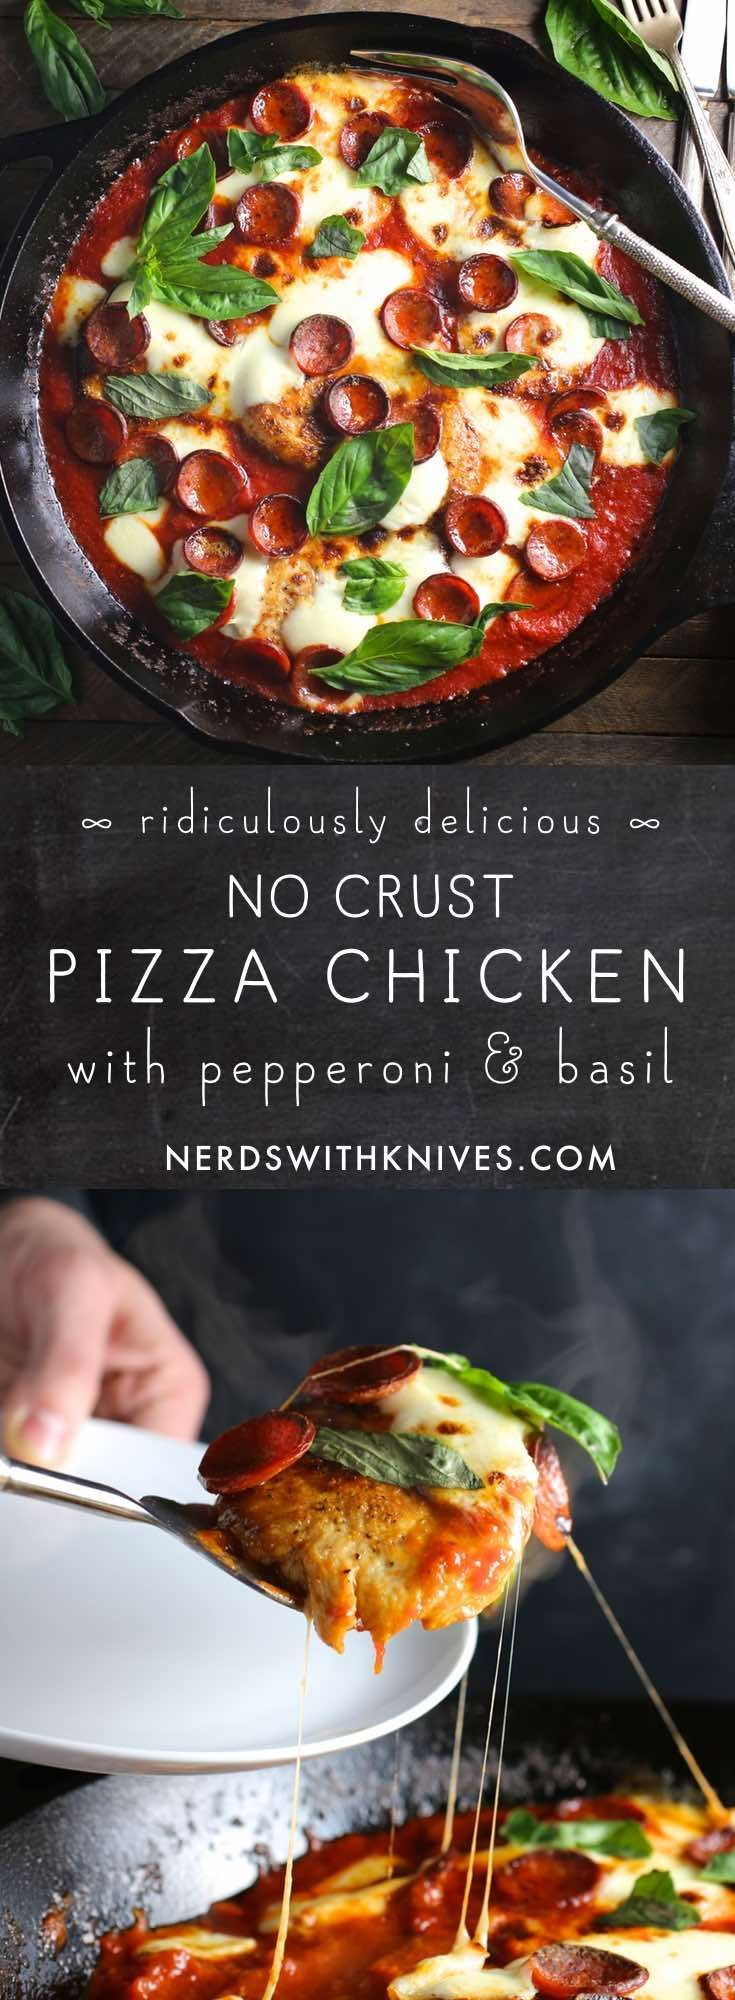 Pizza Chicken (With Pepperoni And Basil)